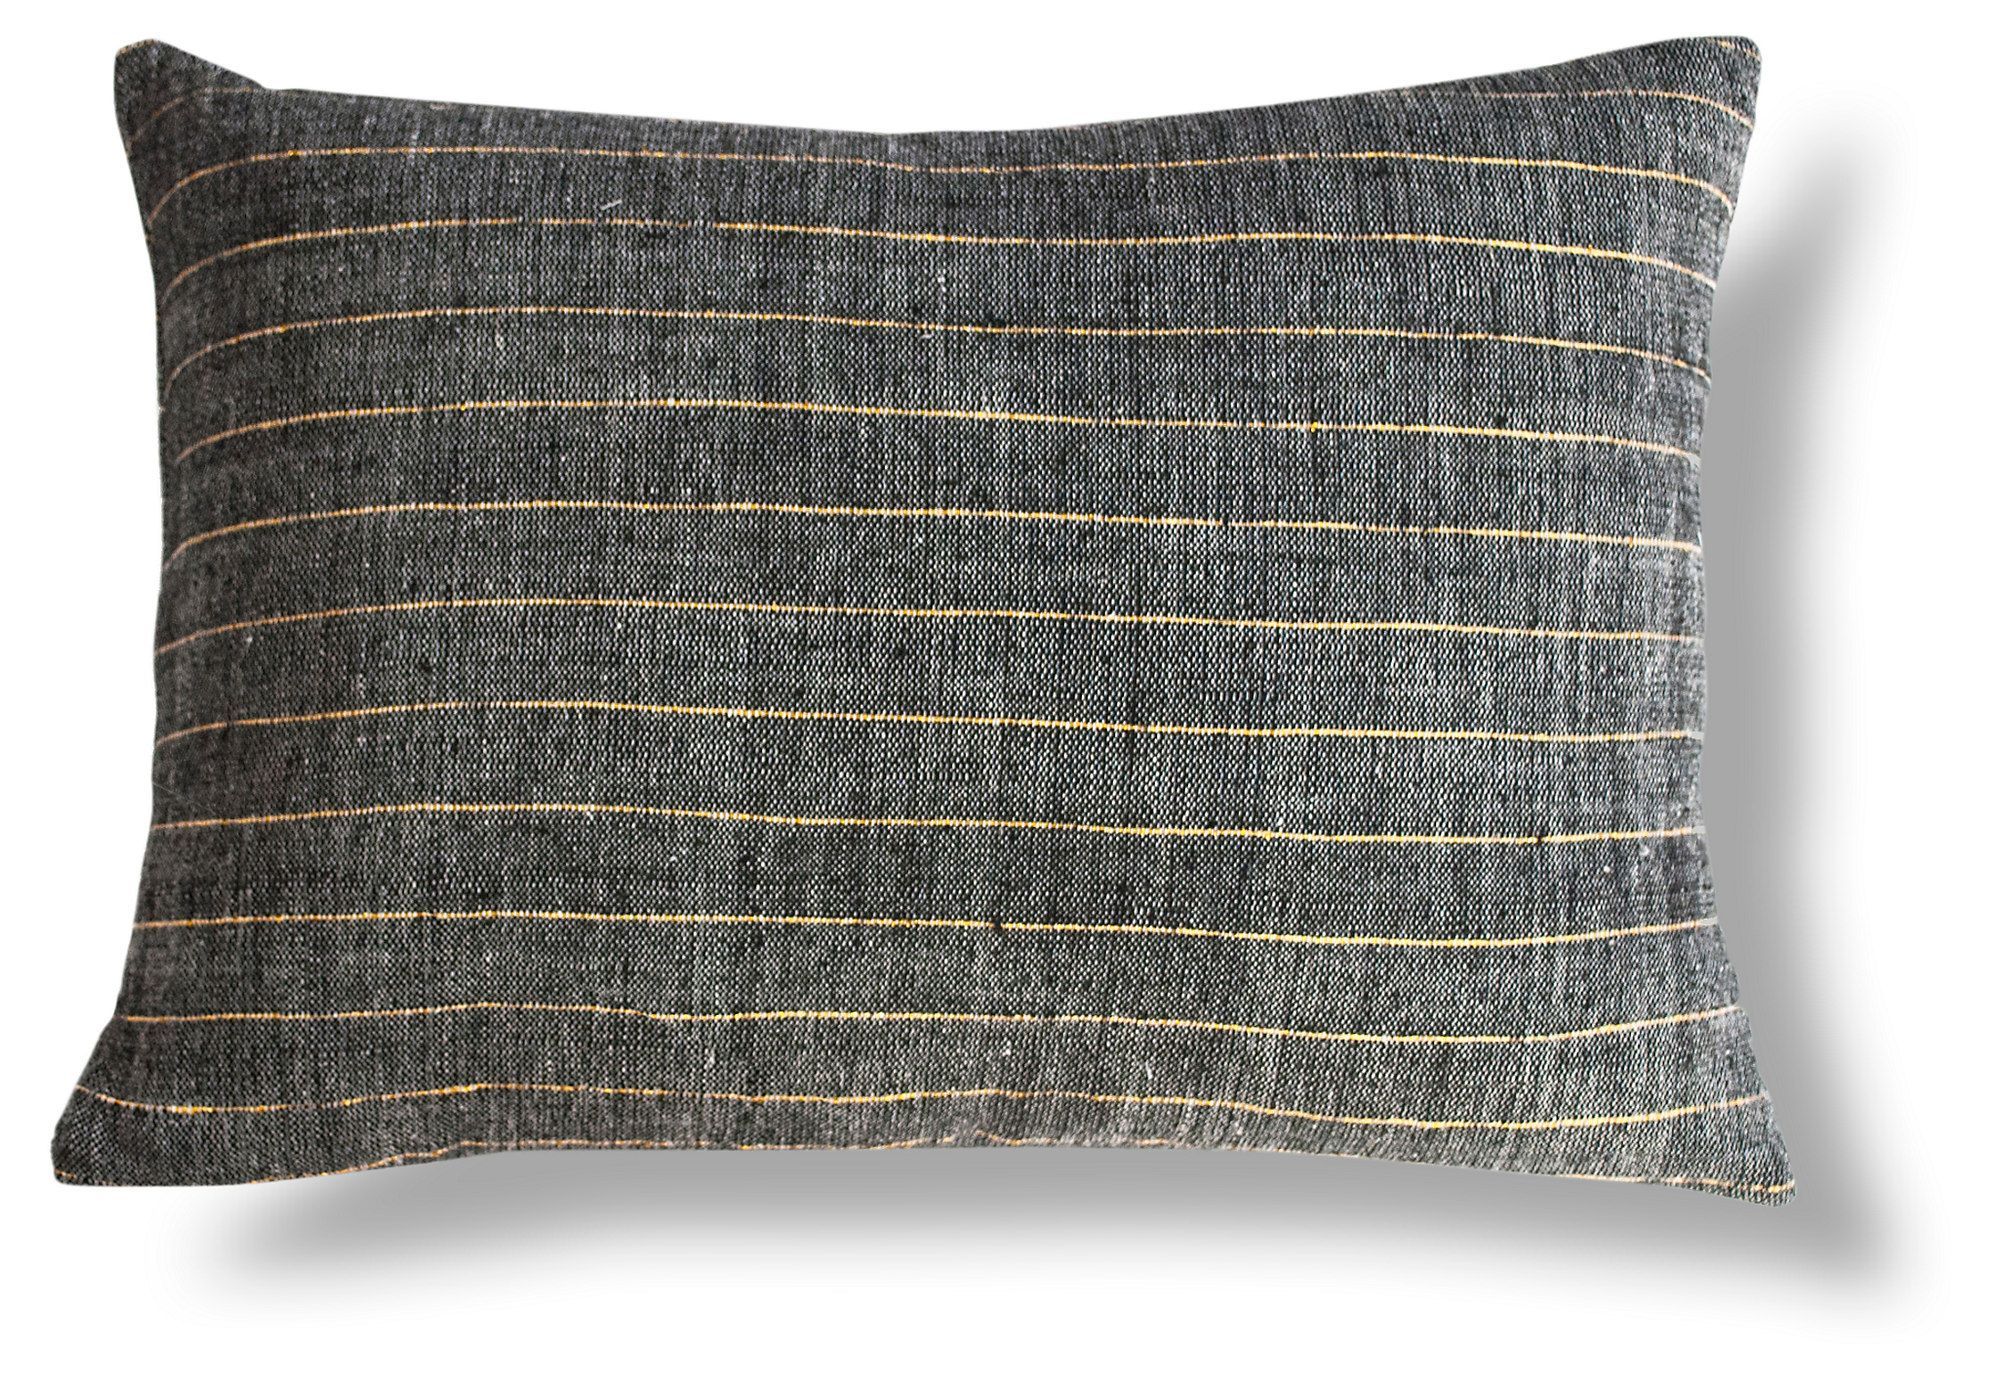 Made with a white warp, black weft, and gold stripes, this Ethiopian cotton pillow has a unique heathered look. Use it to add contrast and a little sparkle to any space. Insert included.